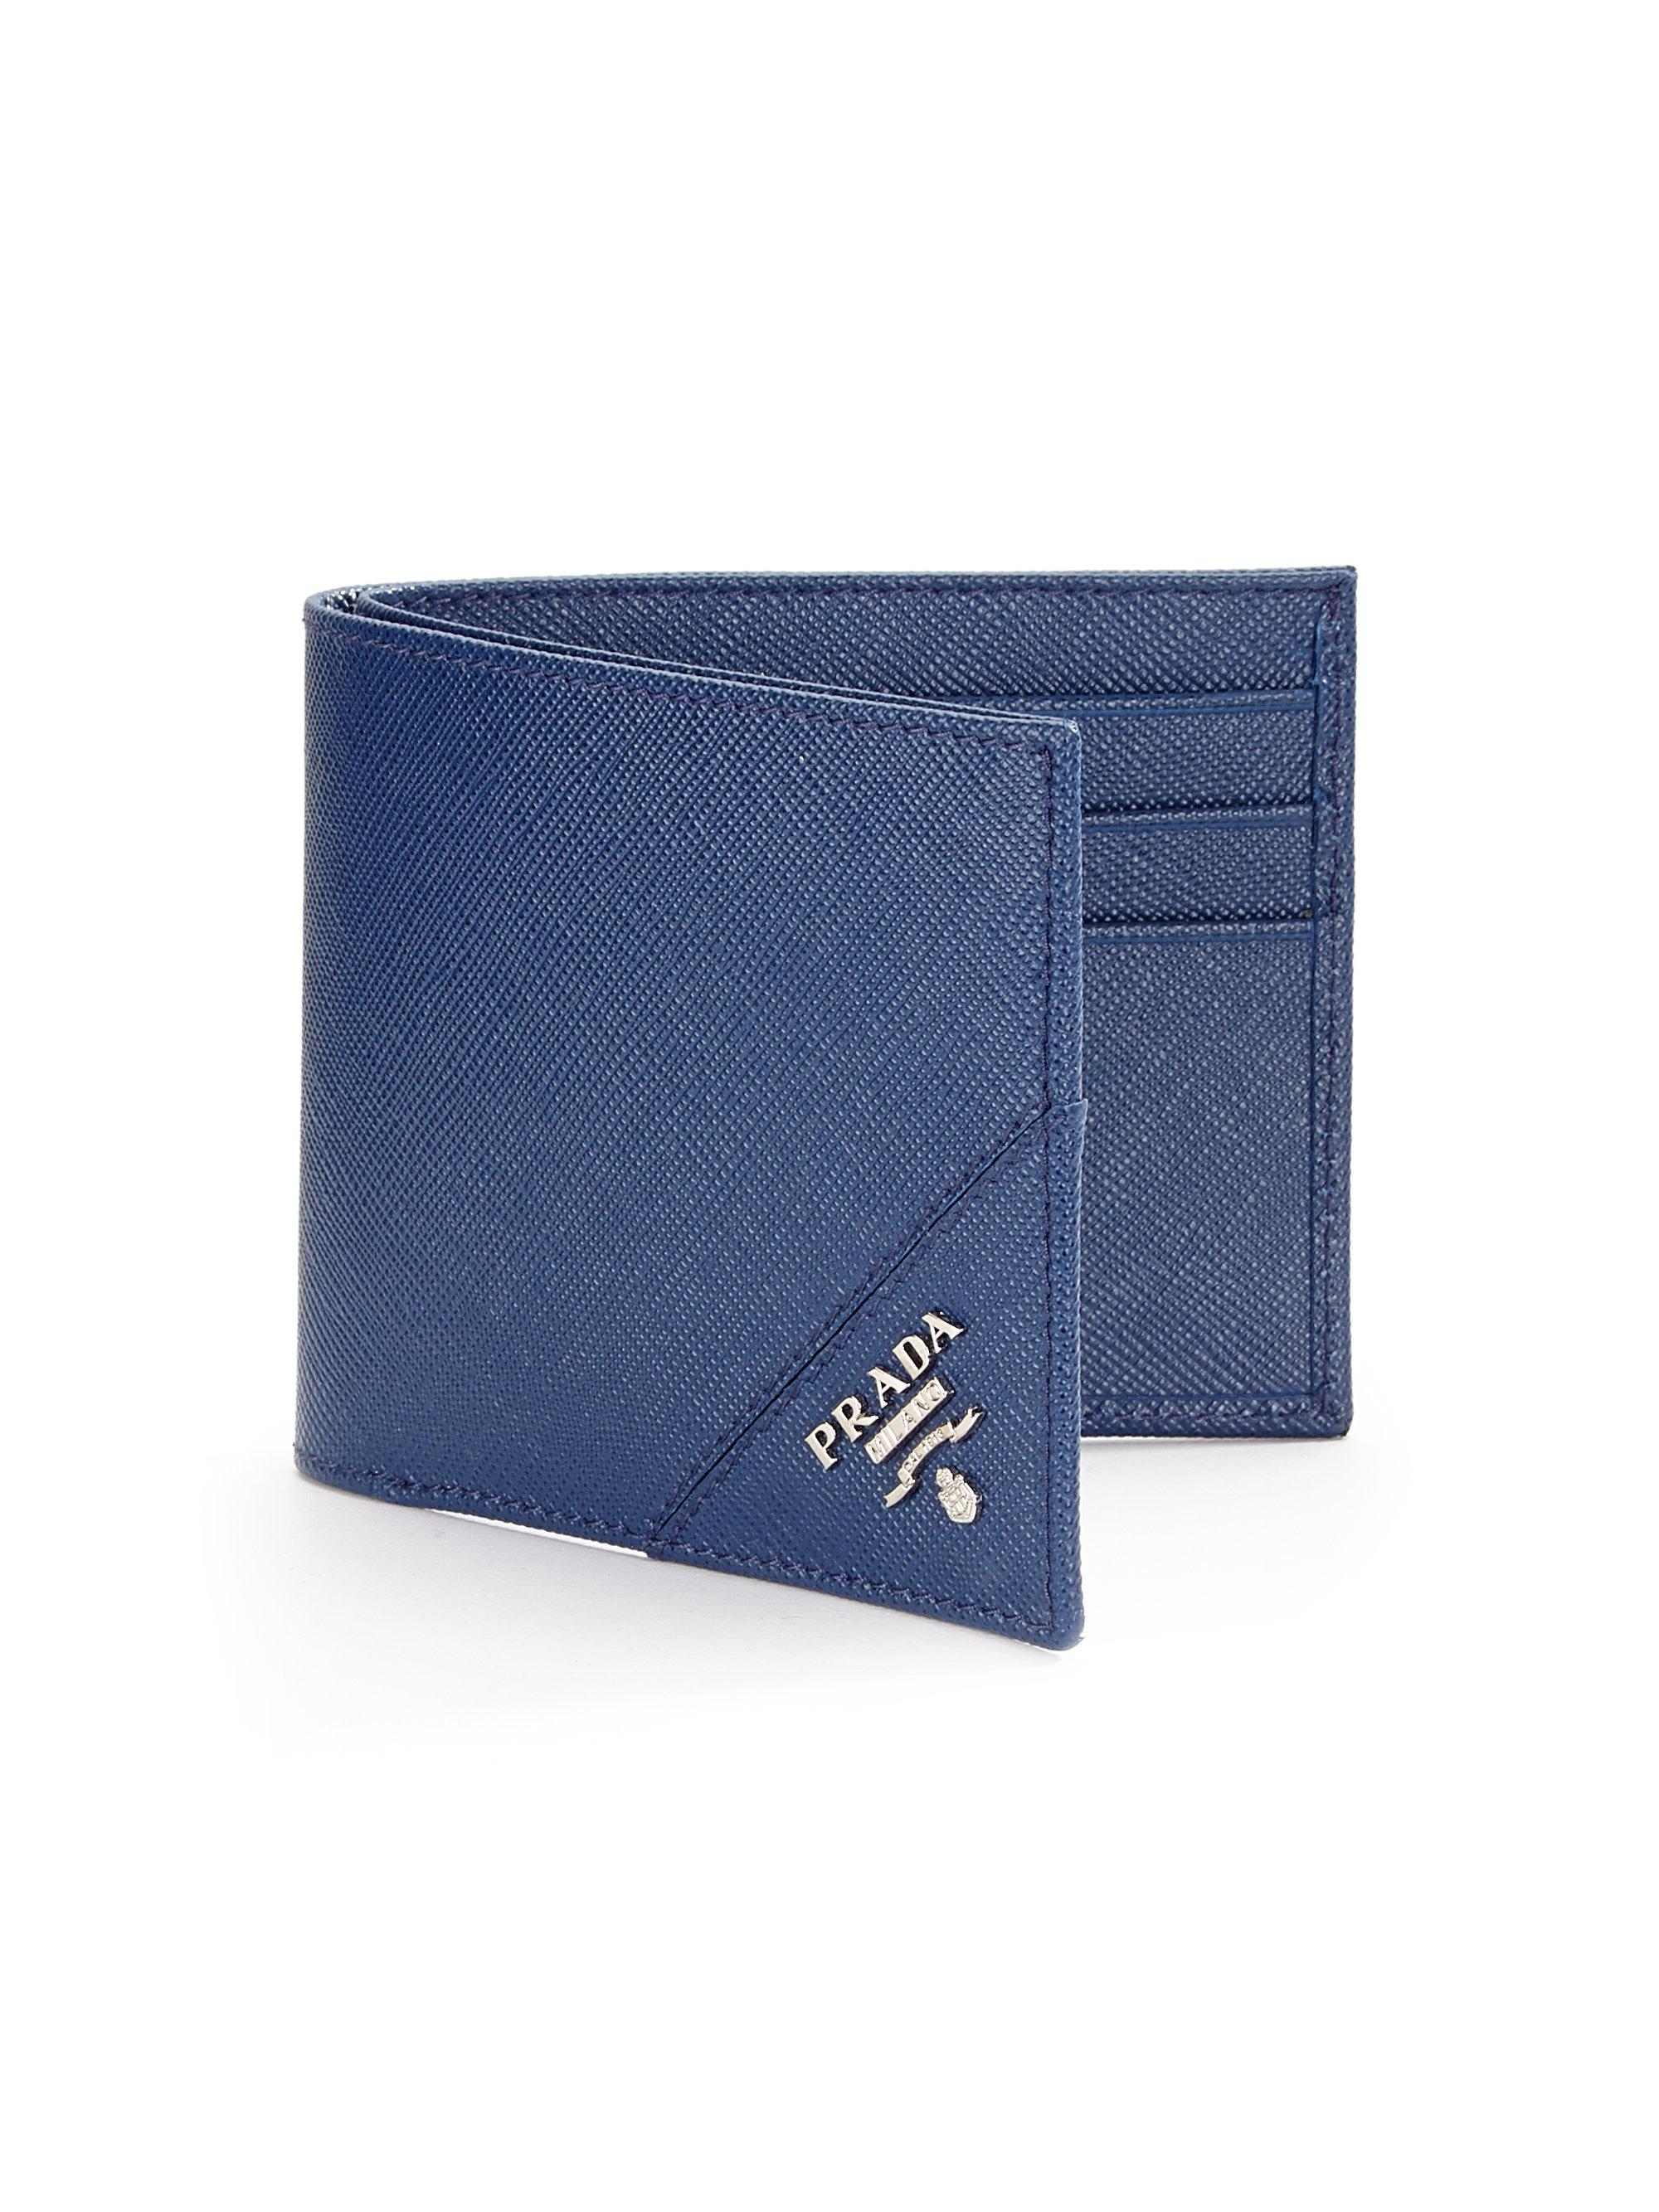 ea317ab7dd ... real lyst prada orizzontale wallet in blue for men a3518 be29a